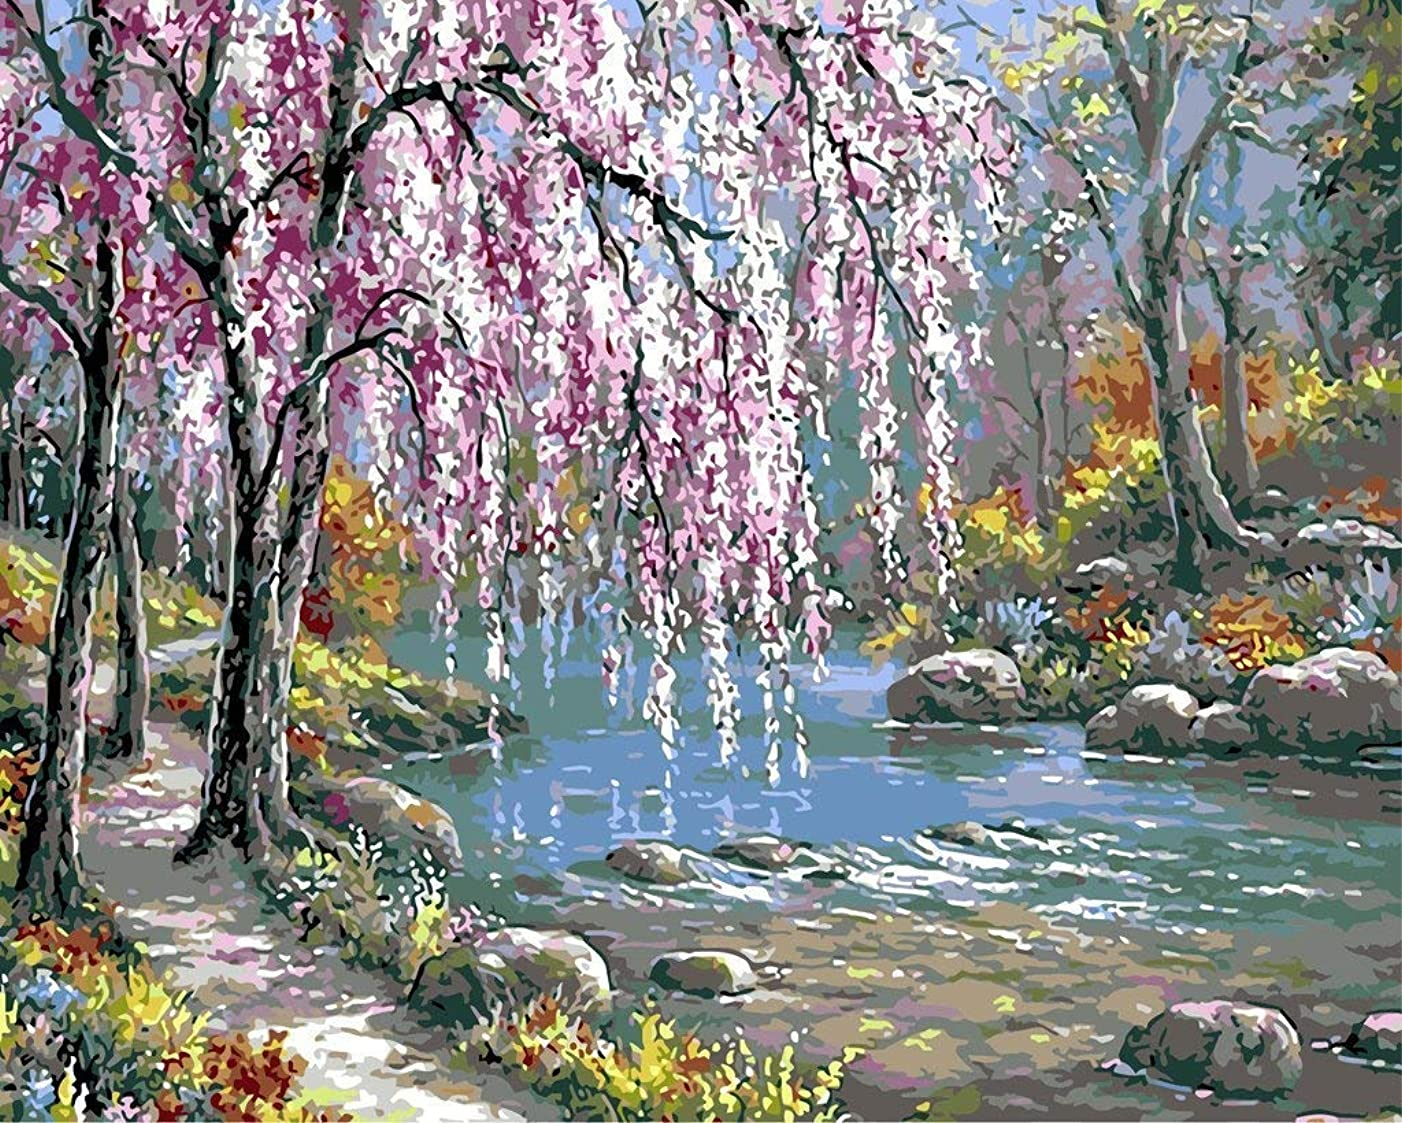 YEESAM ART DIY Paint by Numbers for Adults Beginner Kids, Willow Tree River 16x20 inch Linen Canvas Acrylic Stress Less Number Painting Gifts